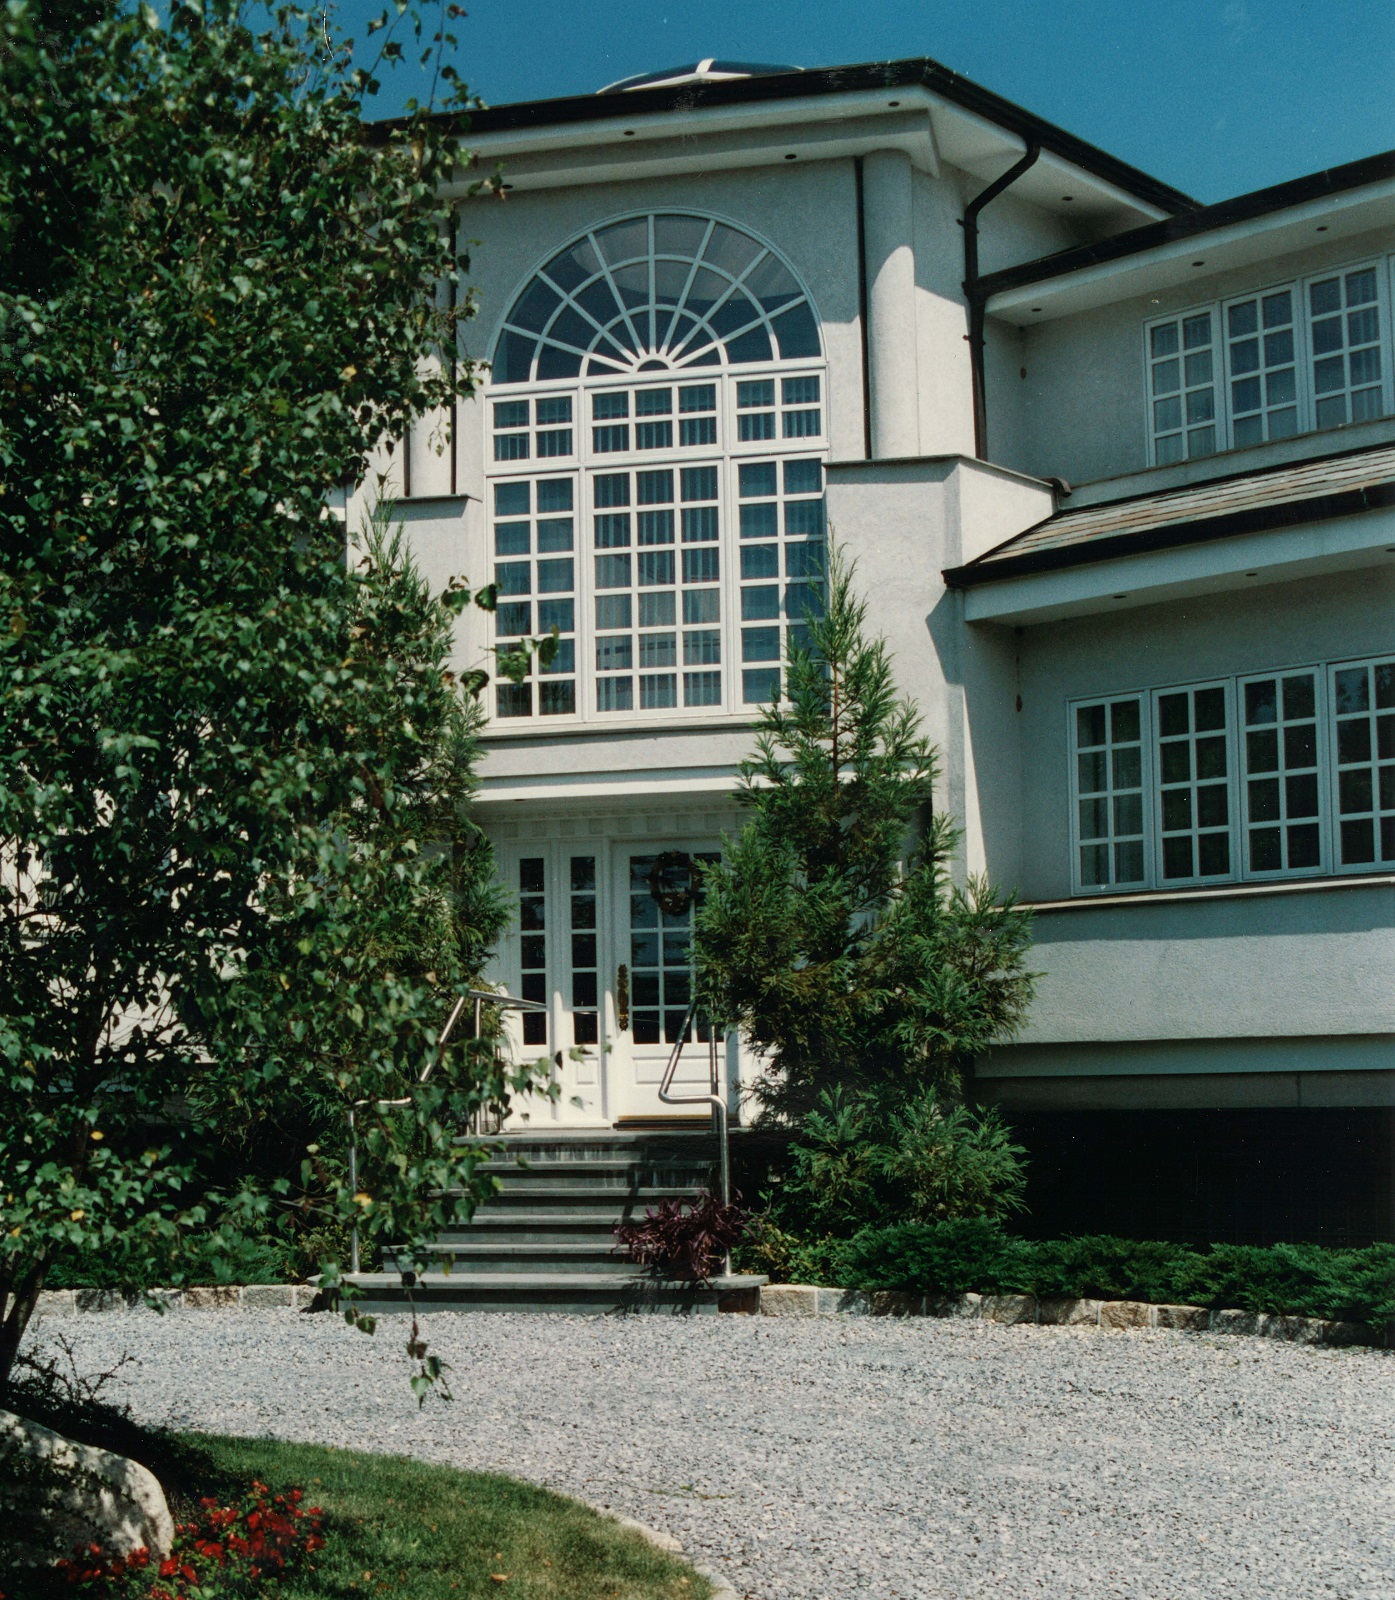 Residential Exterior Services: Residential Architectural Services Solves Massive Problems